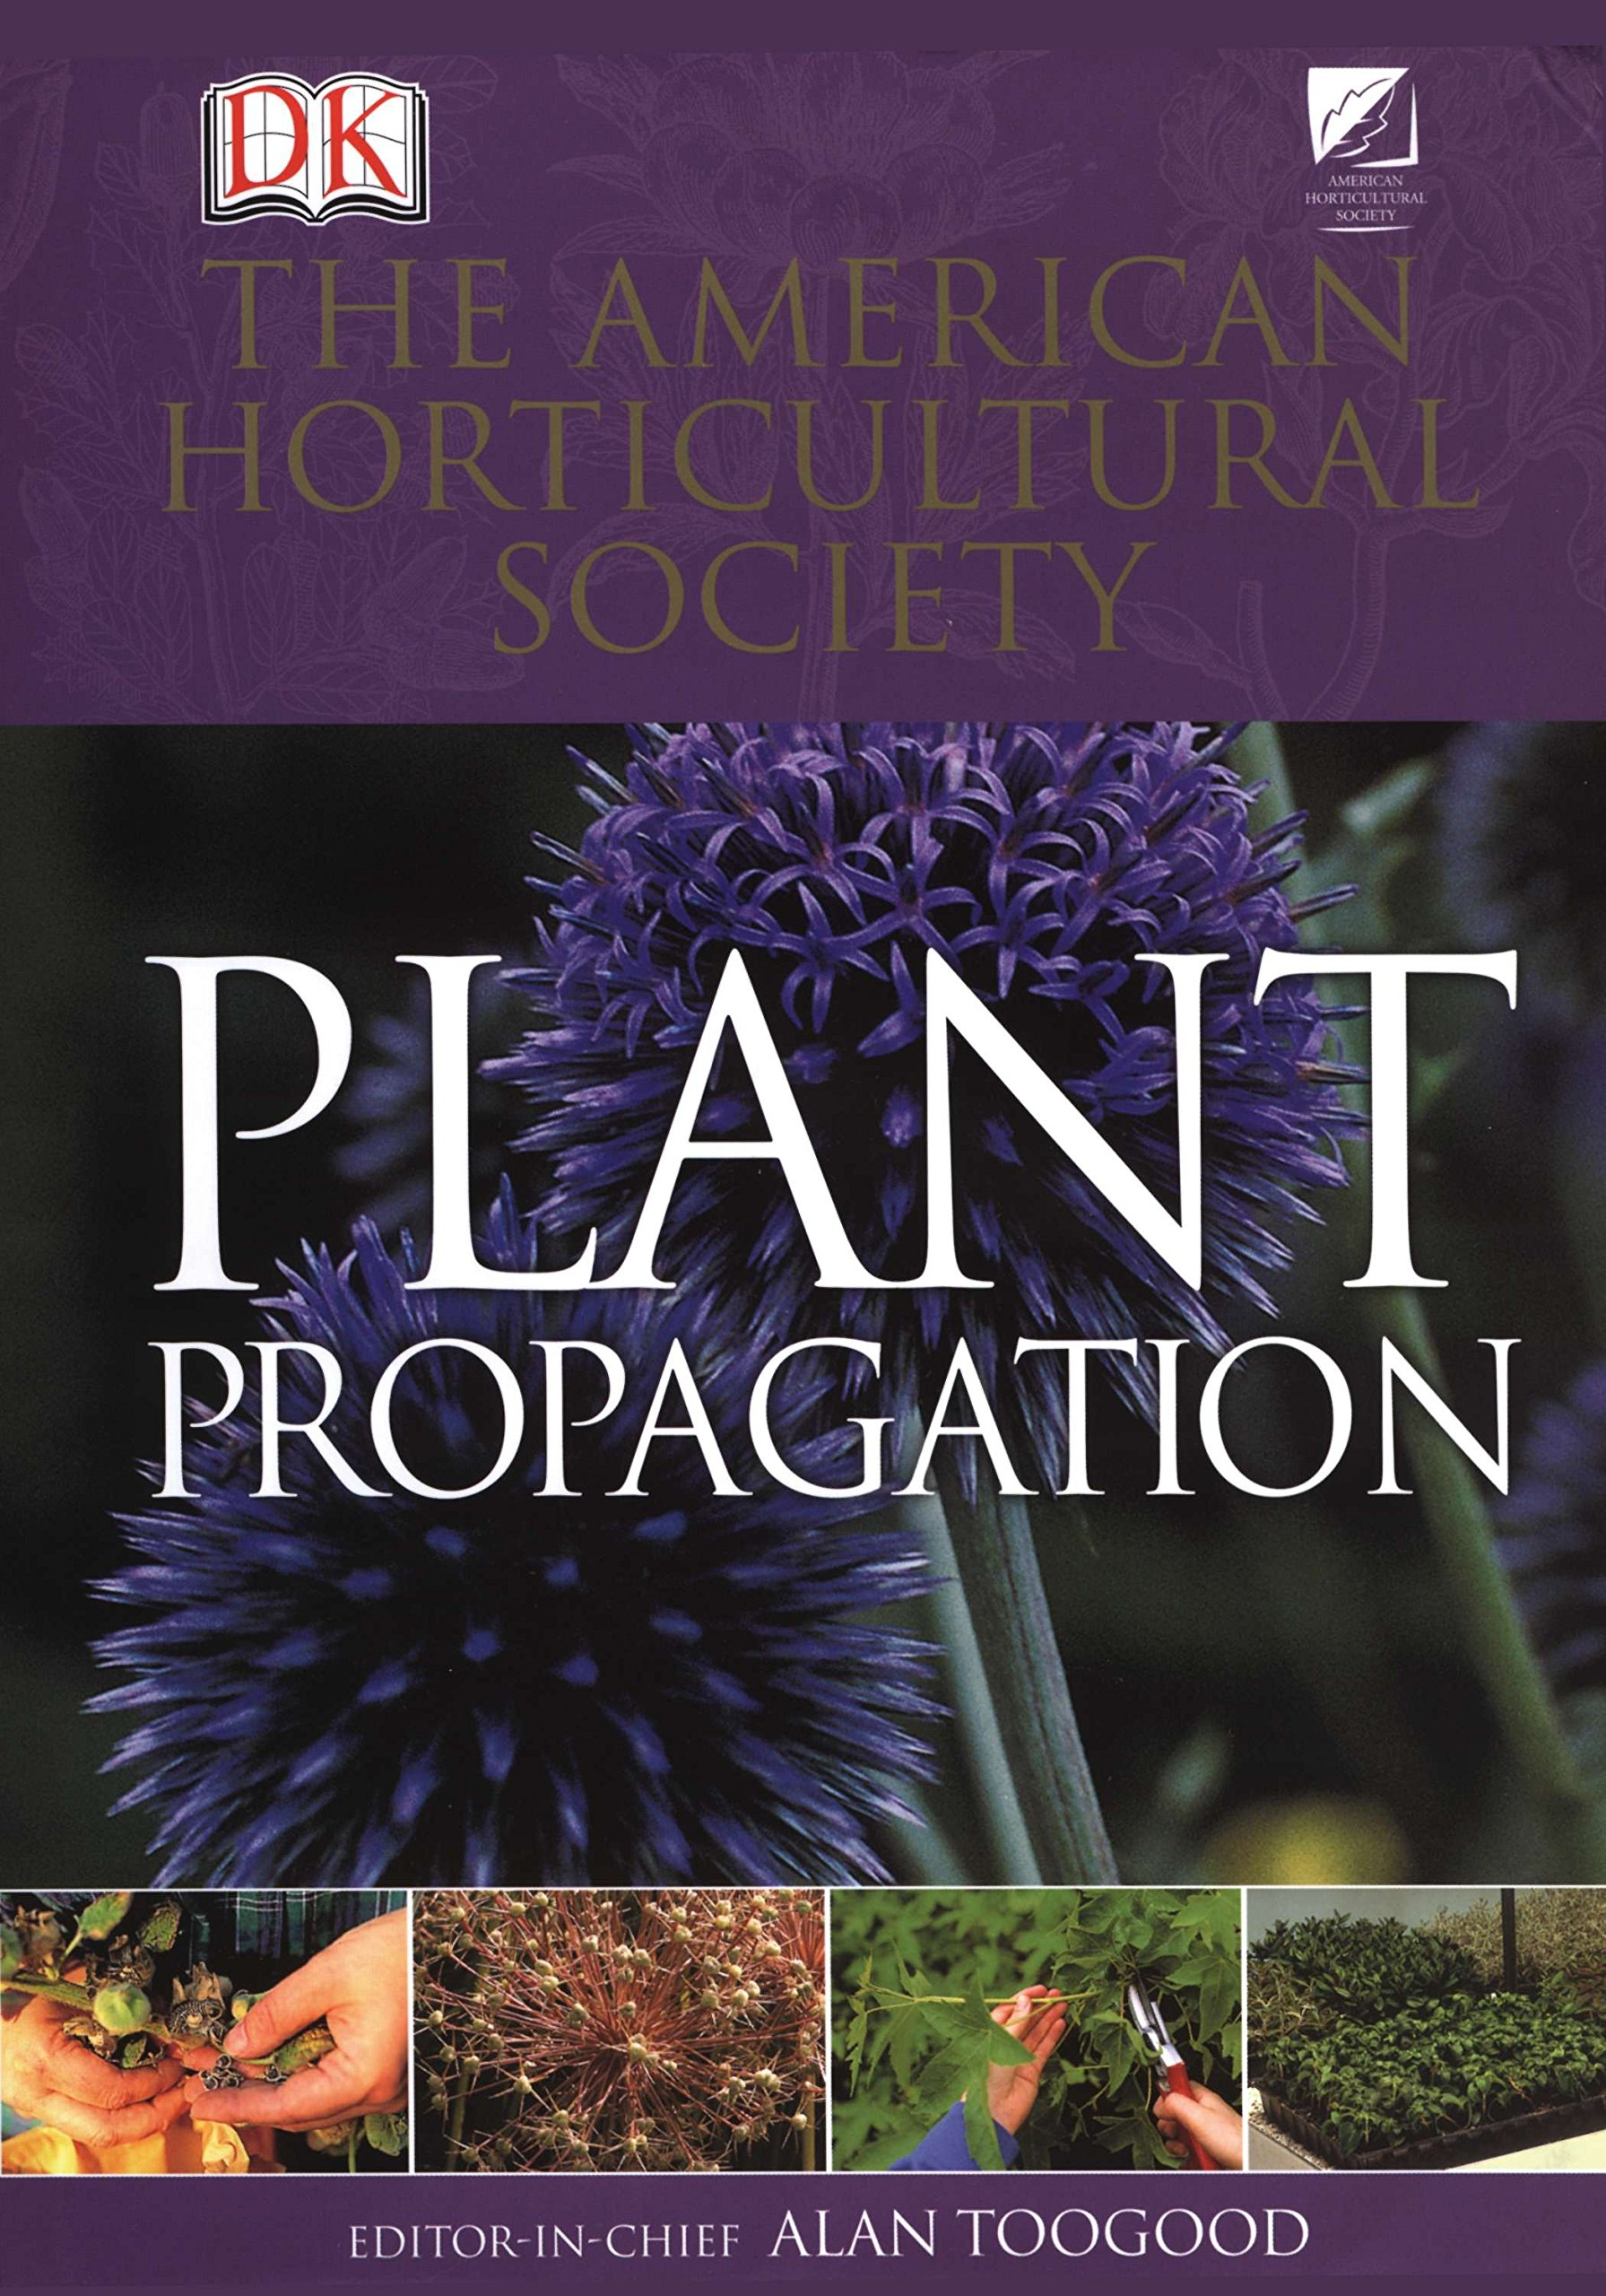 American Horticultural Society Plant Propagation: The Fully Illustrated Plant-by-Plant Manual of Practical Techniques by DK